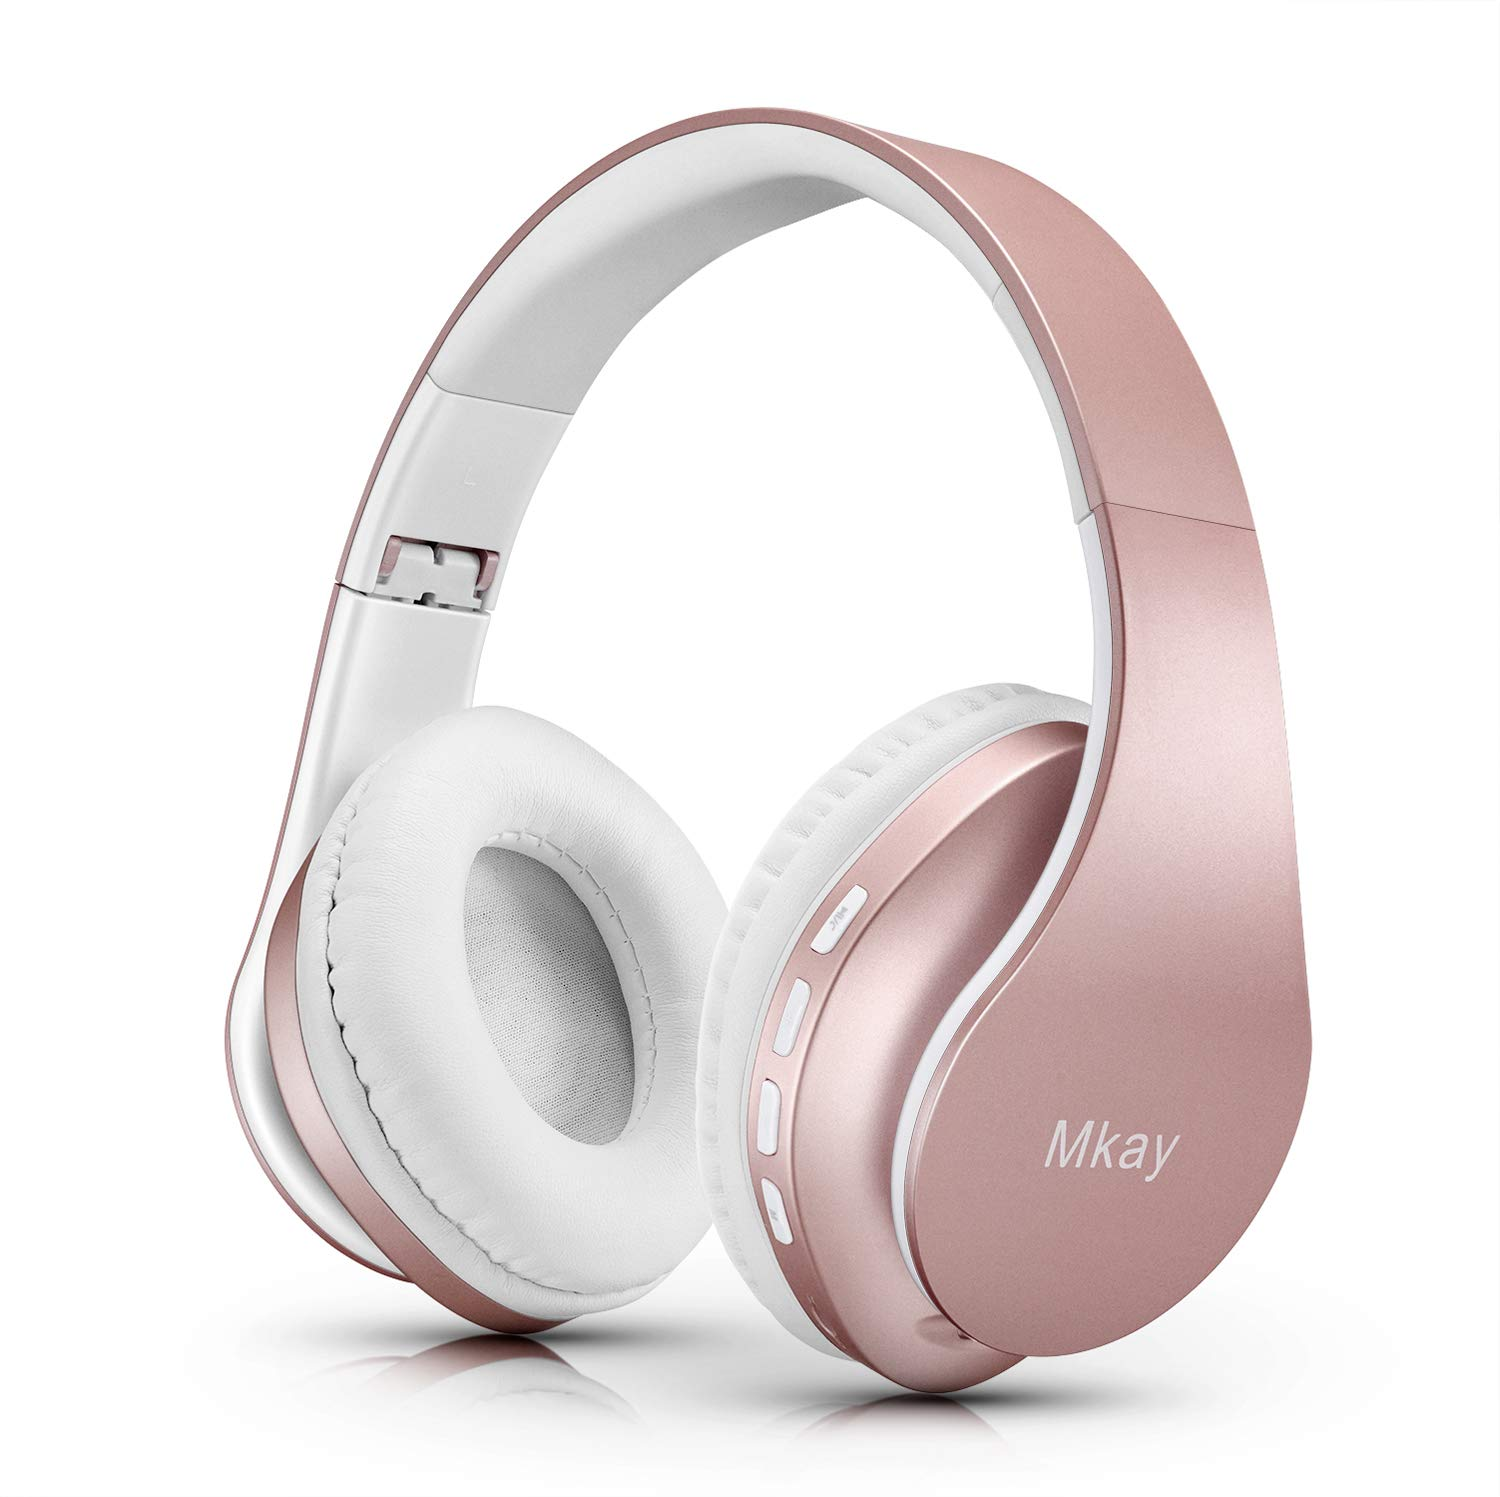 Bluetooth Headphones Wireless,MKay Over Ear Headset V5.0 with Microphone, Foldable & Lightweight, Support Tf Card MP3 Mode and Fm Radio for Cellphones Laptop TV-Rose Gold by MKay